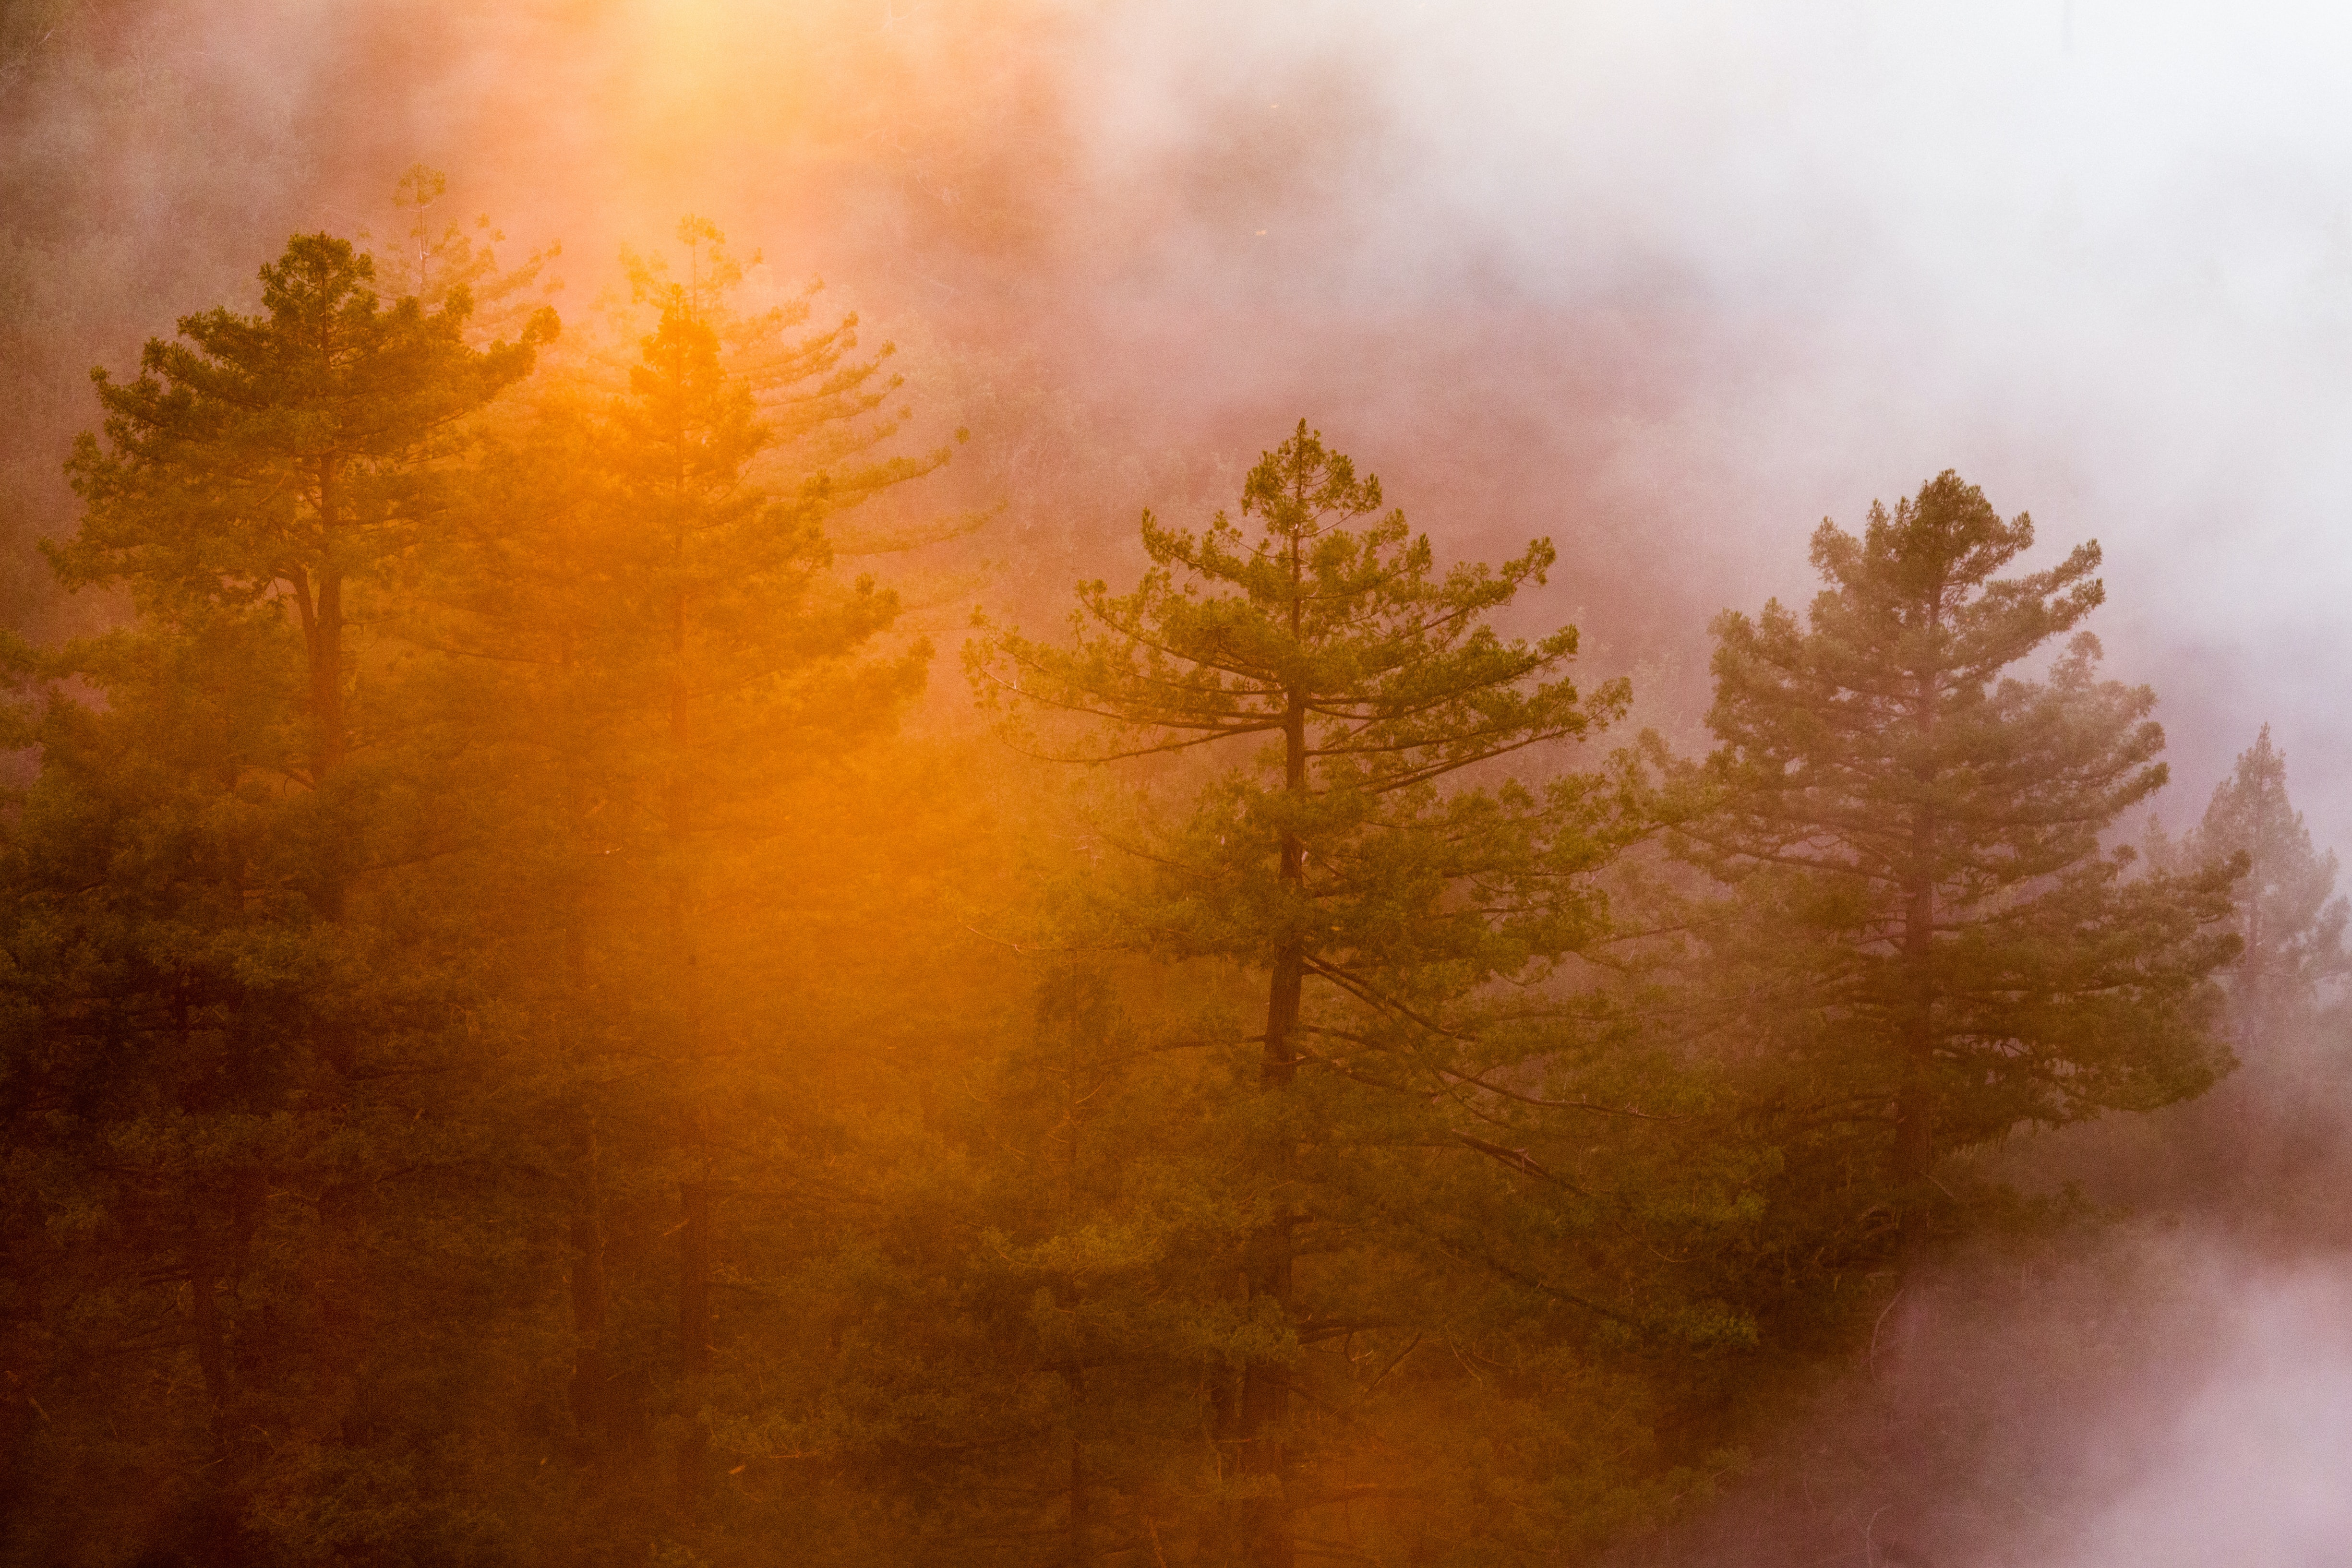 An orange-hued shot of a group of trees in Big Sur